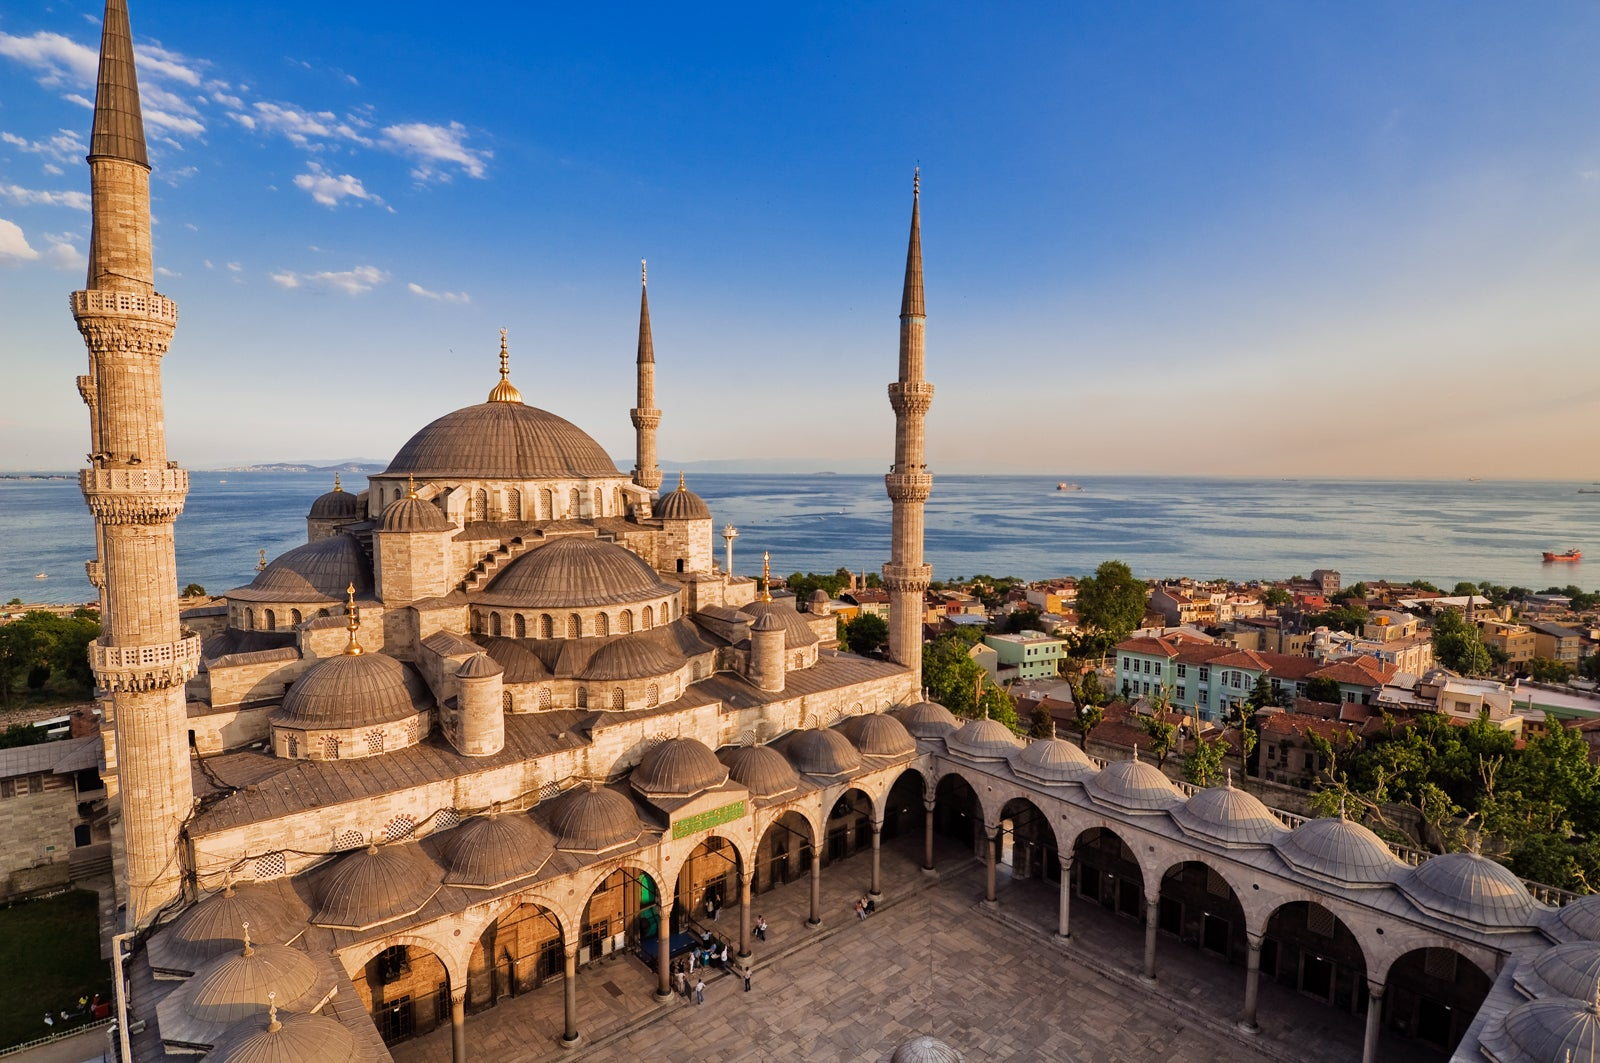 Second Cities: The best destinations to add onto a trip to Istanbul - The Points Guy UK